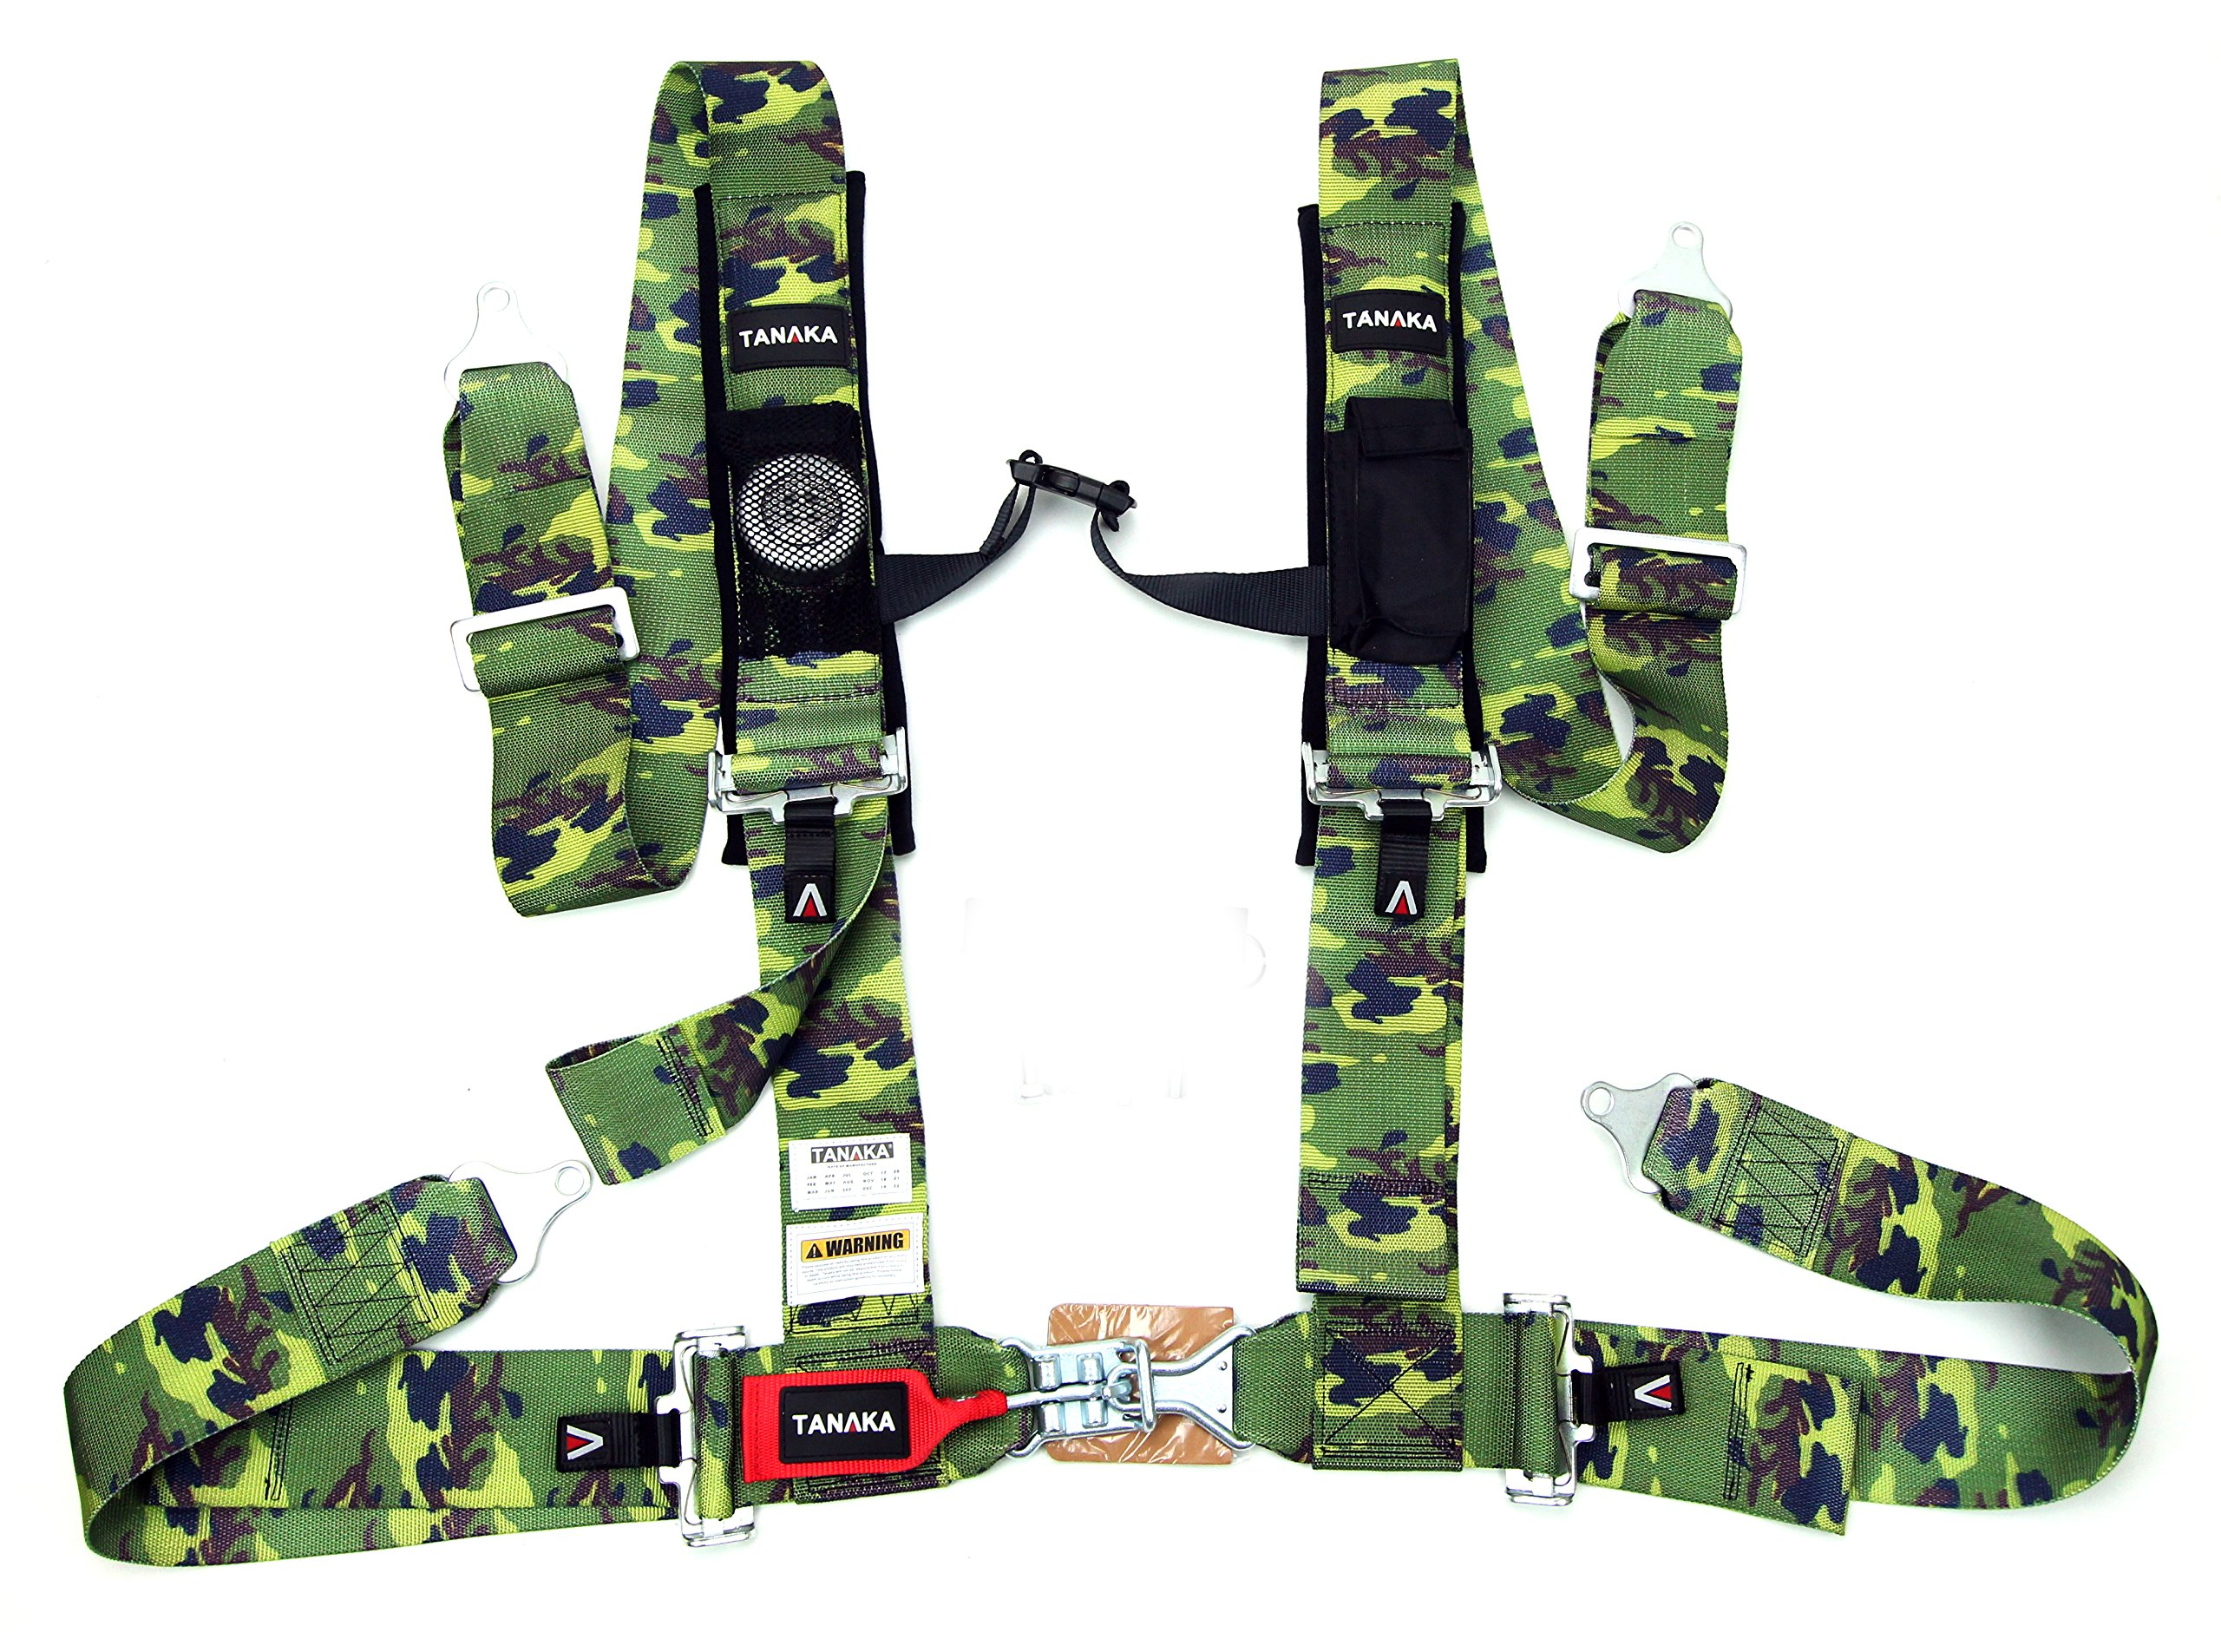 Tanaka Latch and Link 4-Point Safety Harness Set with Ultra Comfort Heavy Duty Shoulder Pads and Utility Pockets (for one seat) (Camouflage)